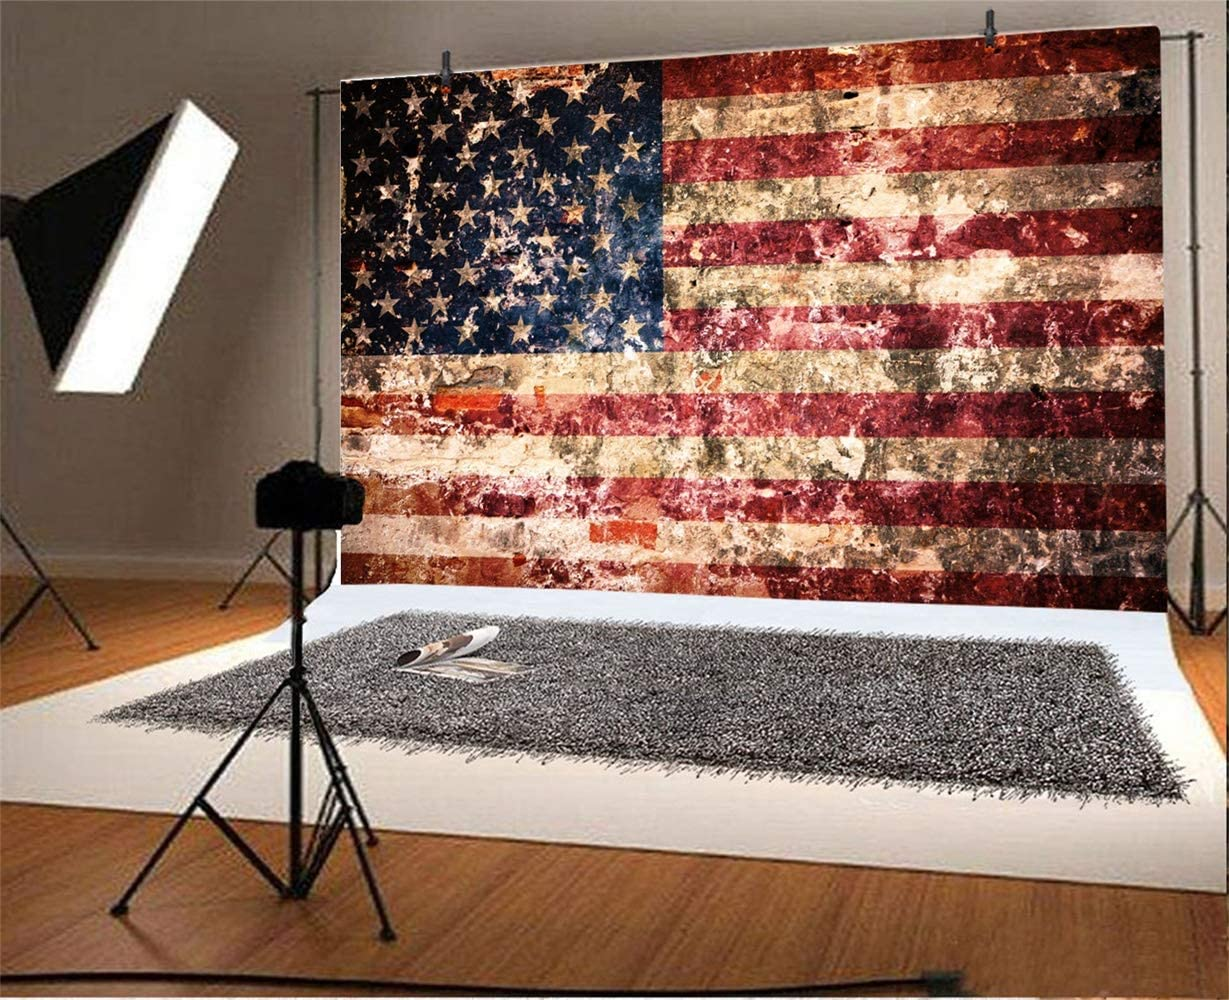 Amazon Com Laeacco Grunge Dirty Wall Us Flag Painting Backdrop Vinyl 10x6 5ft Independence Day Veteran Day Memorial Day Background Studio Child Kids Baby Portrait Shoot Eagle Scout Ceremony Nostalgia Style Camera